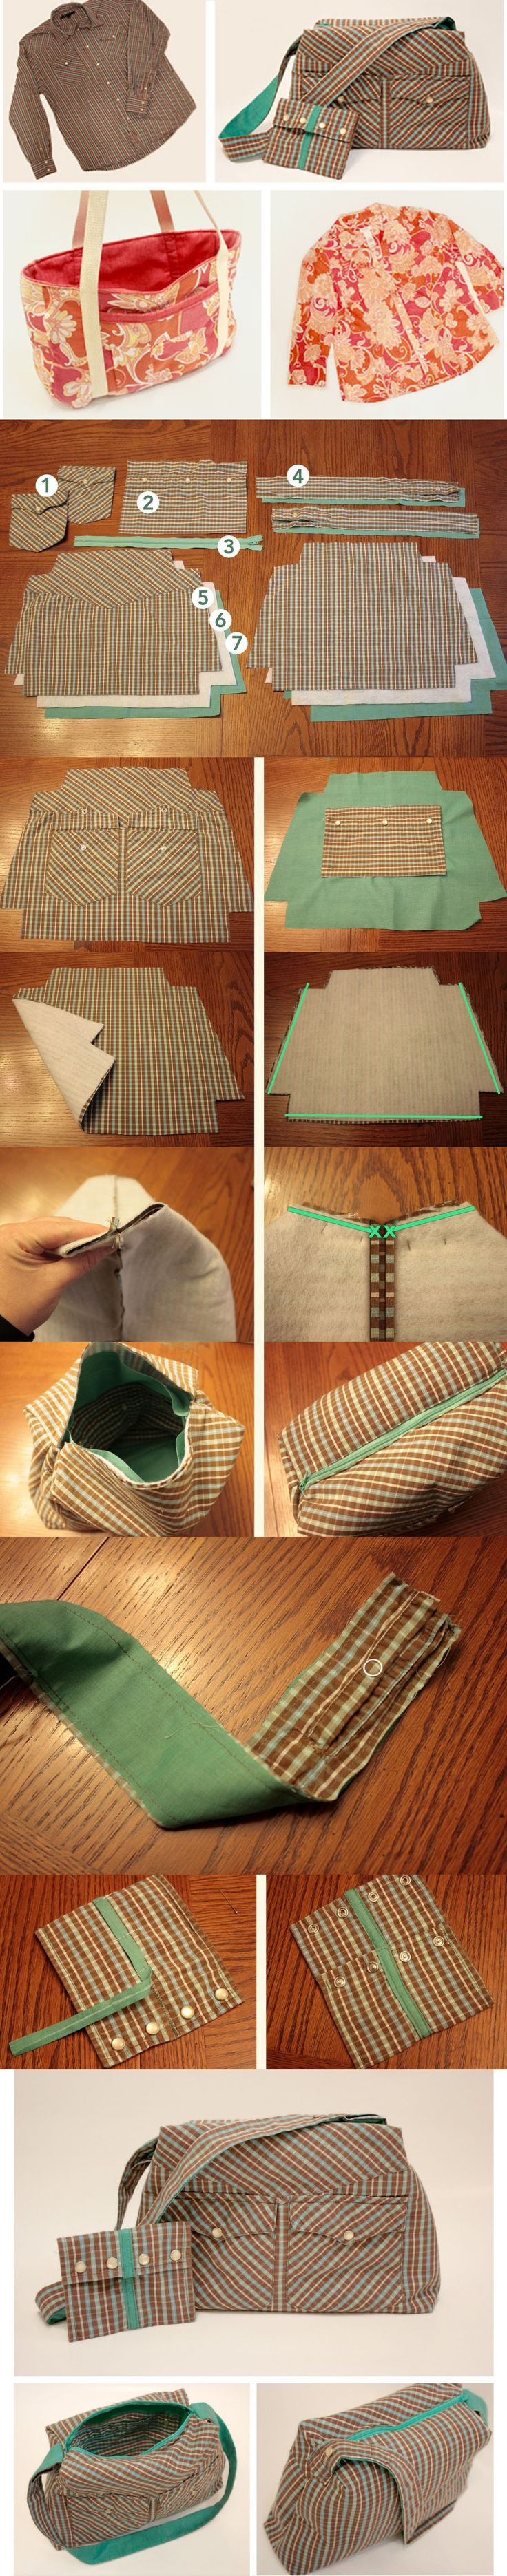 Bolso con una camisa Make a purse from a shirt